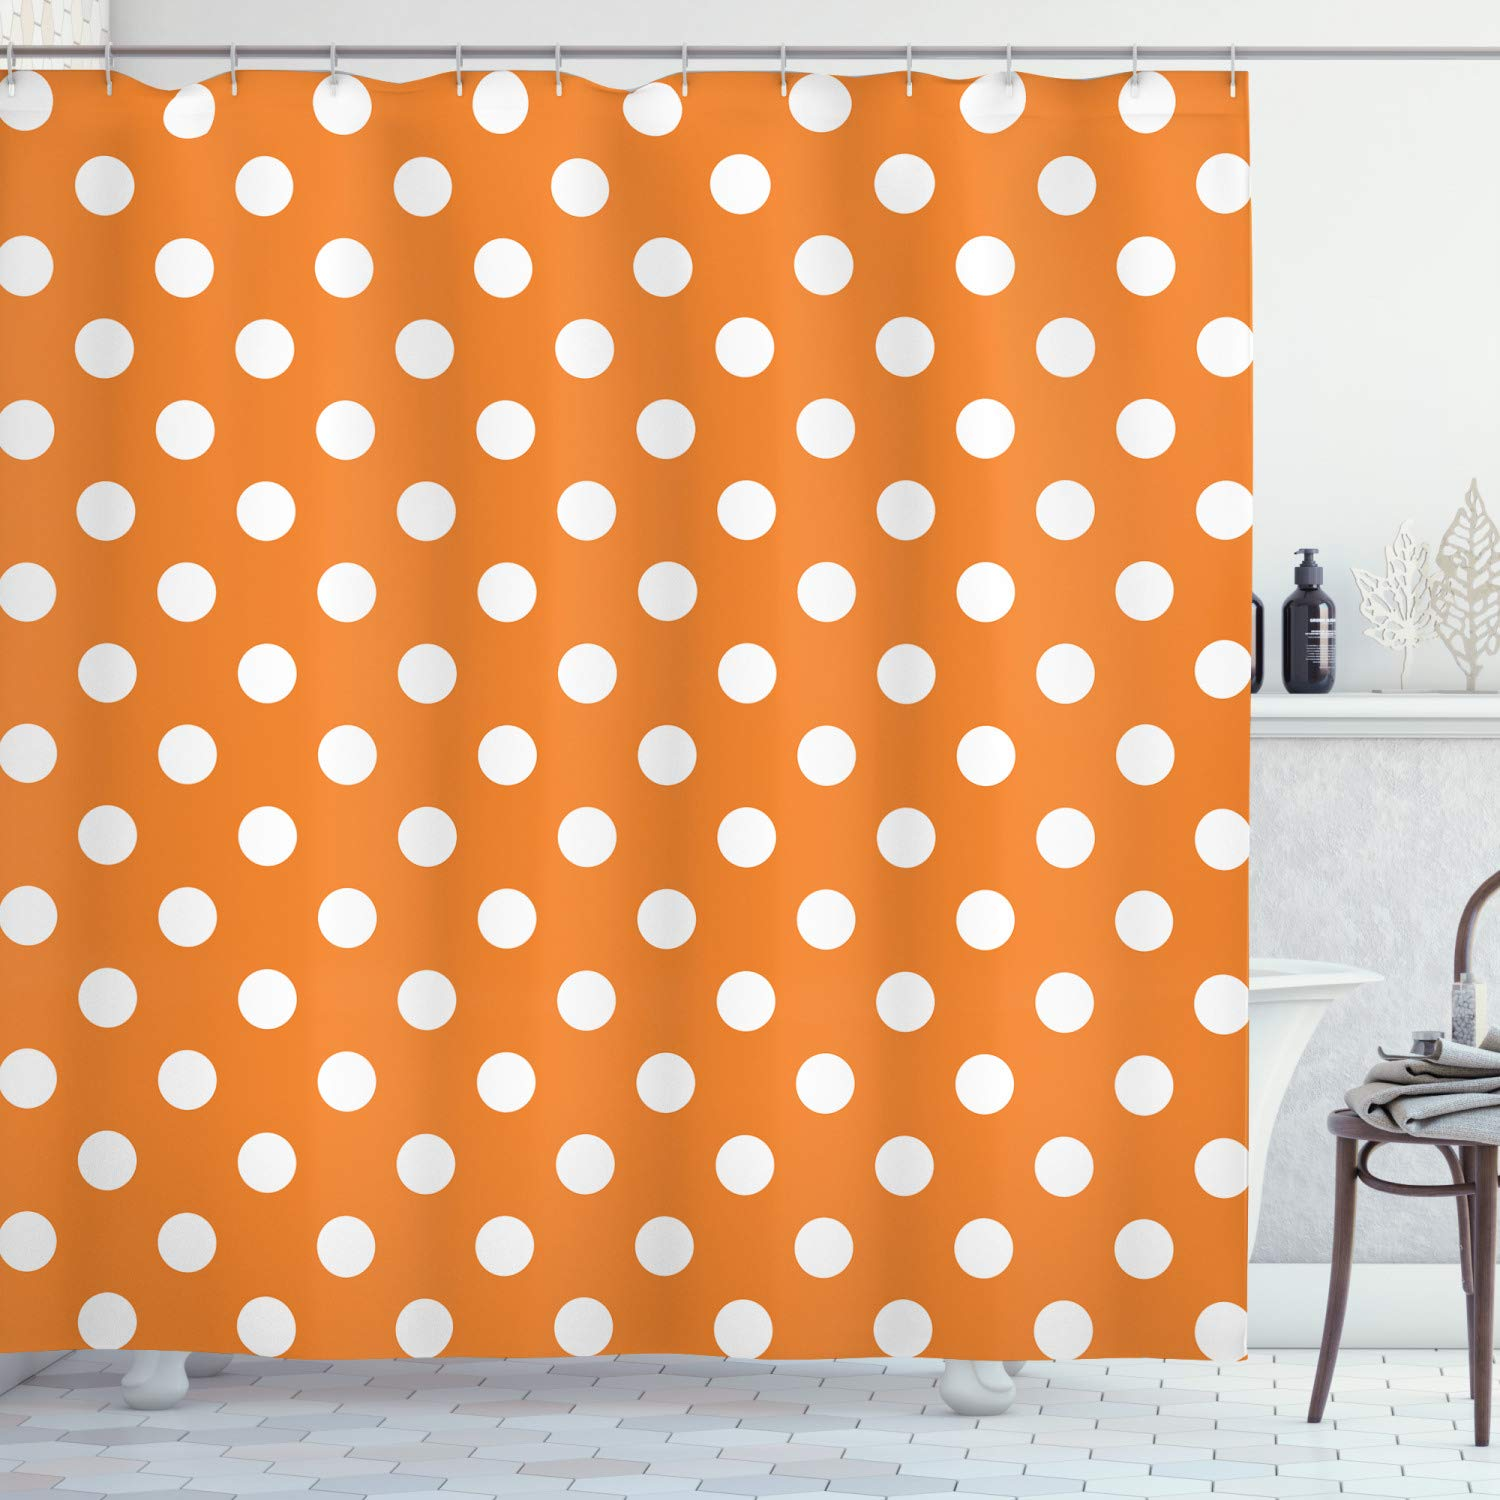 Ambesonne Polka Dots Home Decor Collection, Classic Old-Fashioned Polka Dots Continuous in Spacing and Shape 20's Design, Polyester Fabric Bathroom Shower Curtain Set with Hooks, Orange White